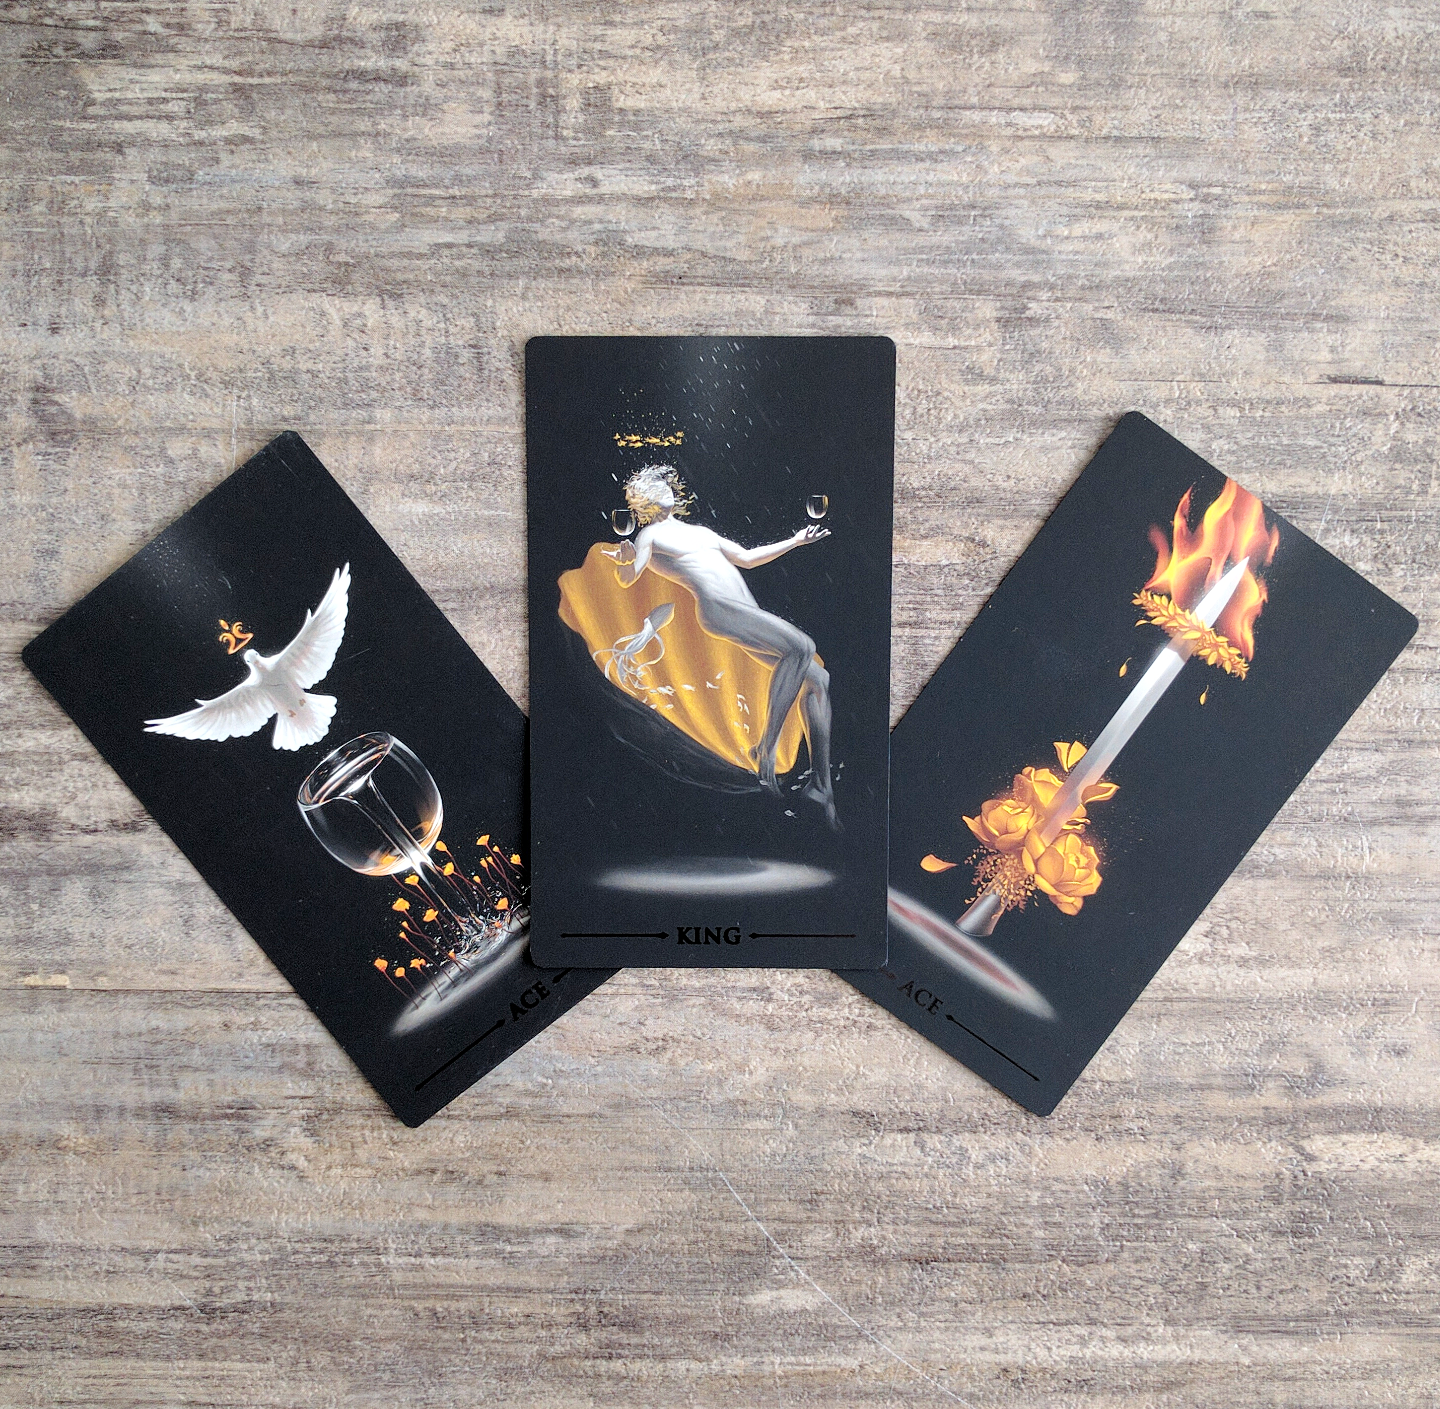 Ace of Cups, King of Cups, Ace of Swords